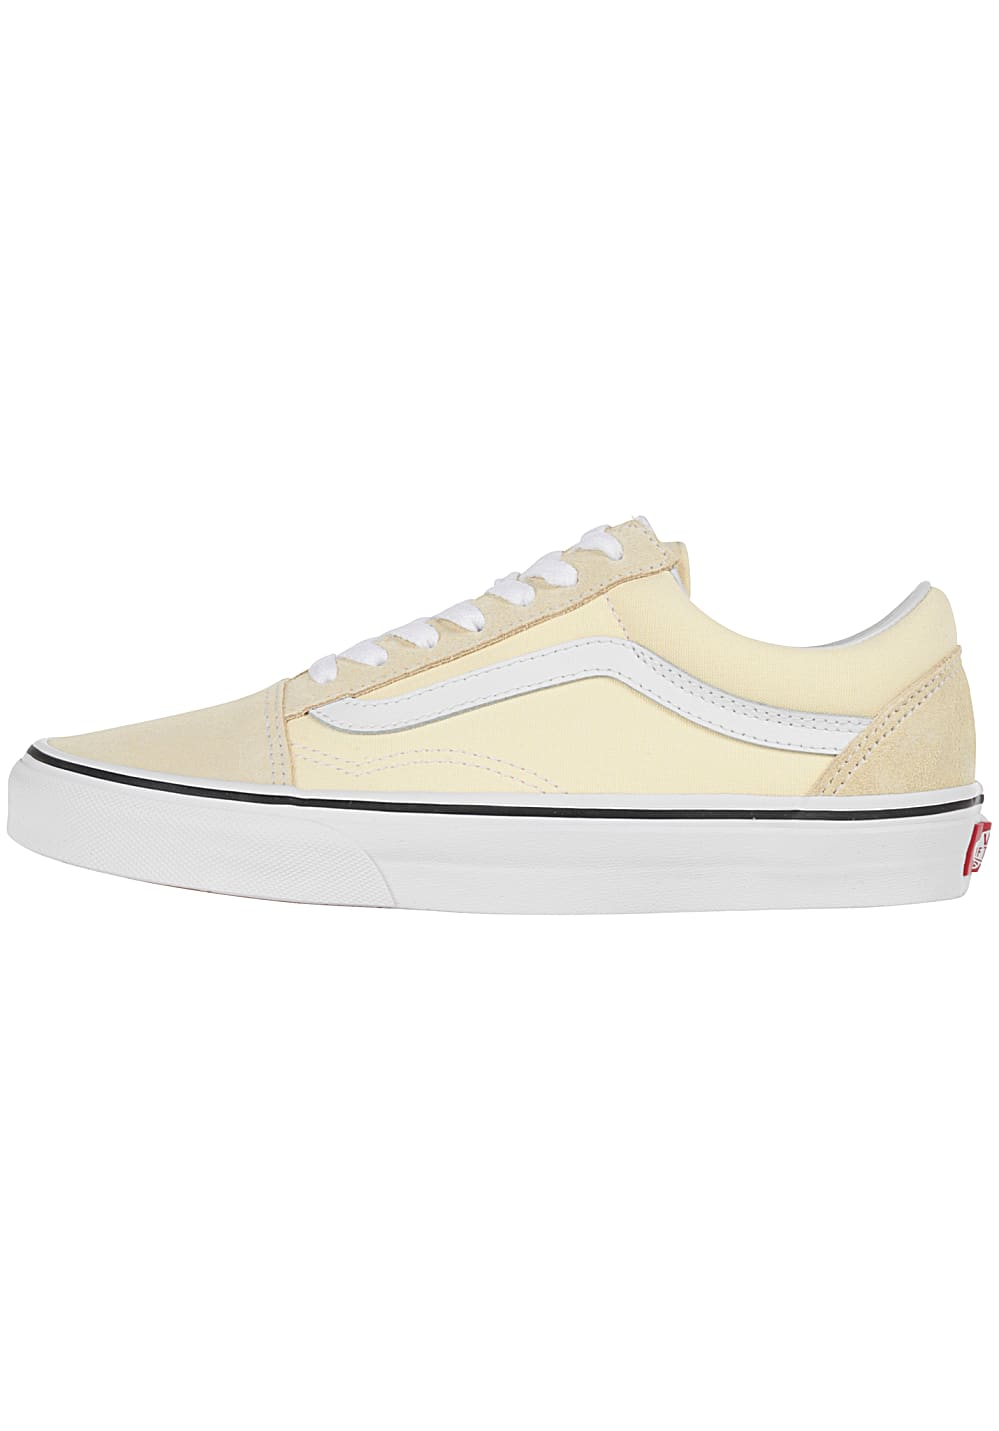 VANS Old Skool - Sneaker für Damen - Gelb - Planet Sports